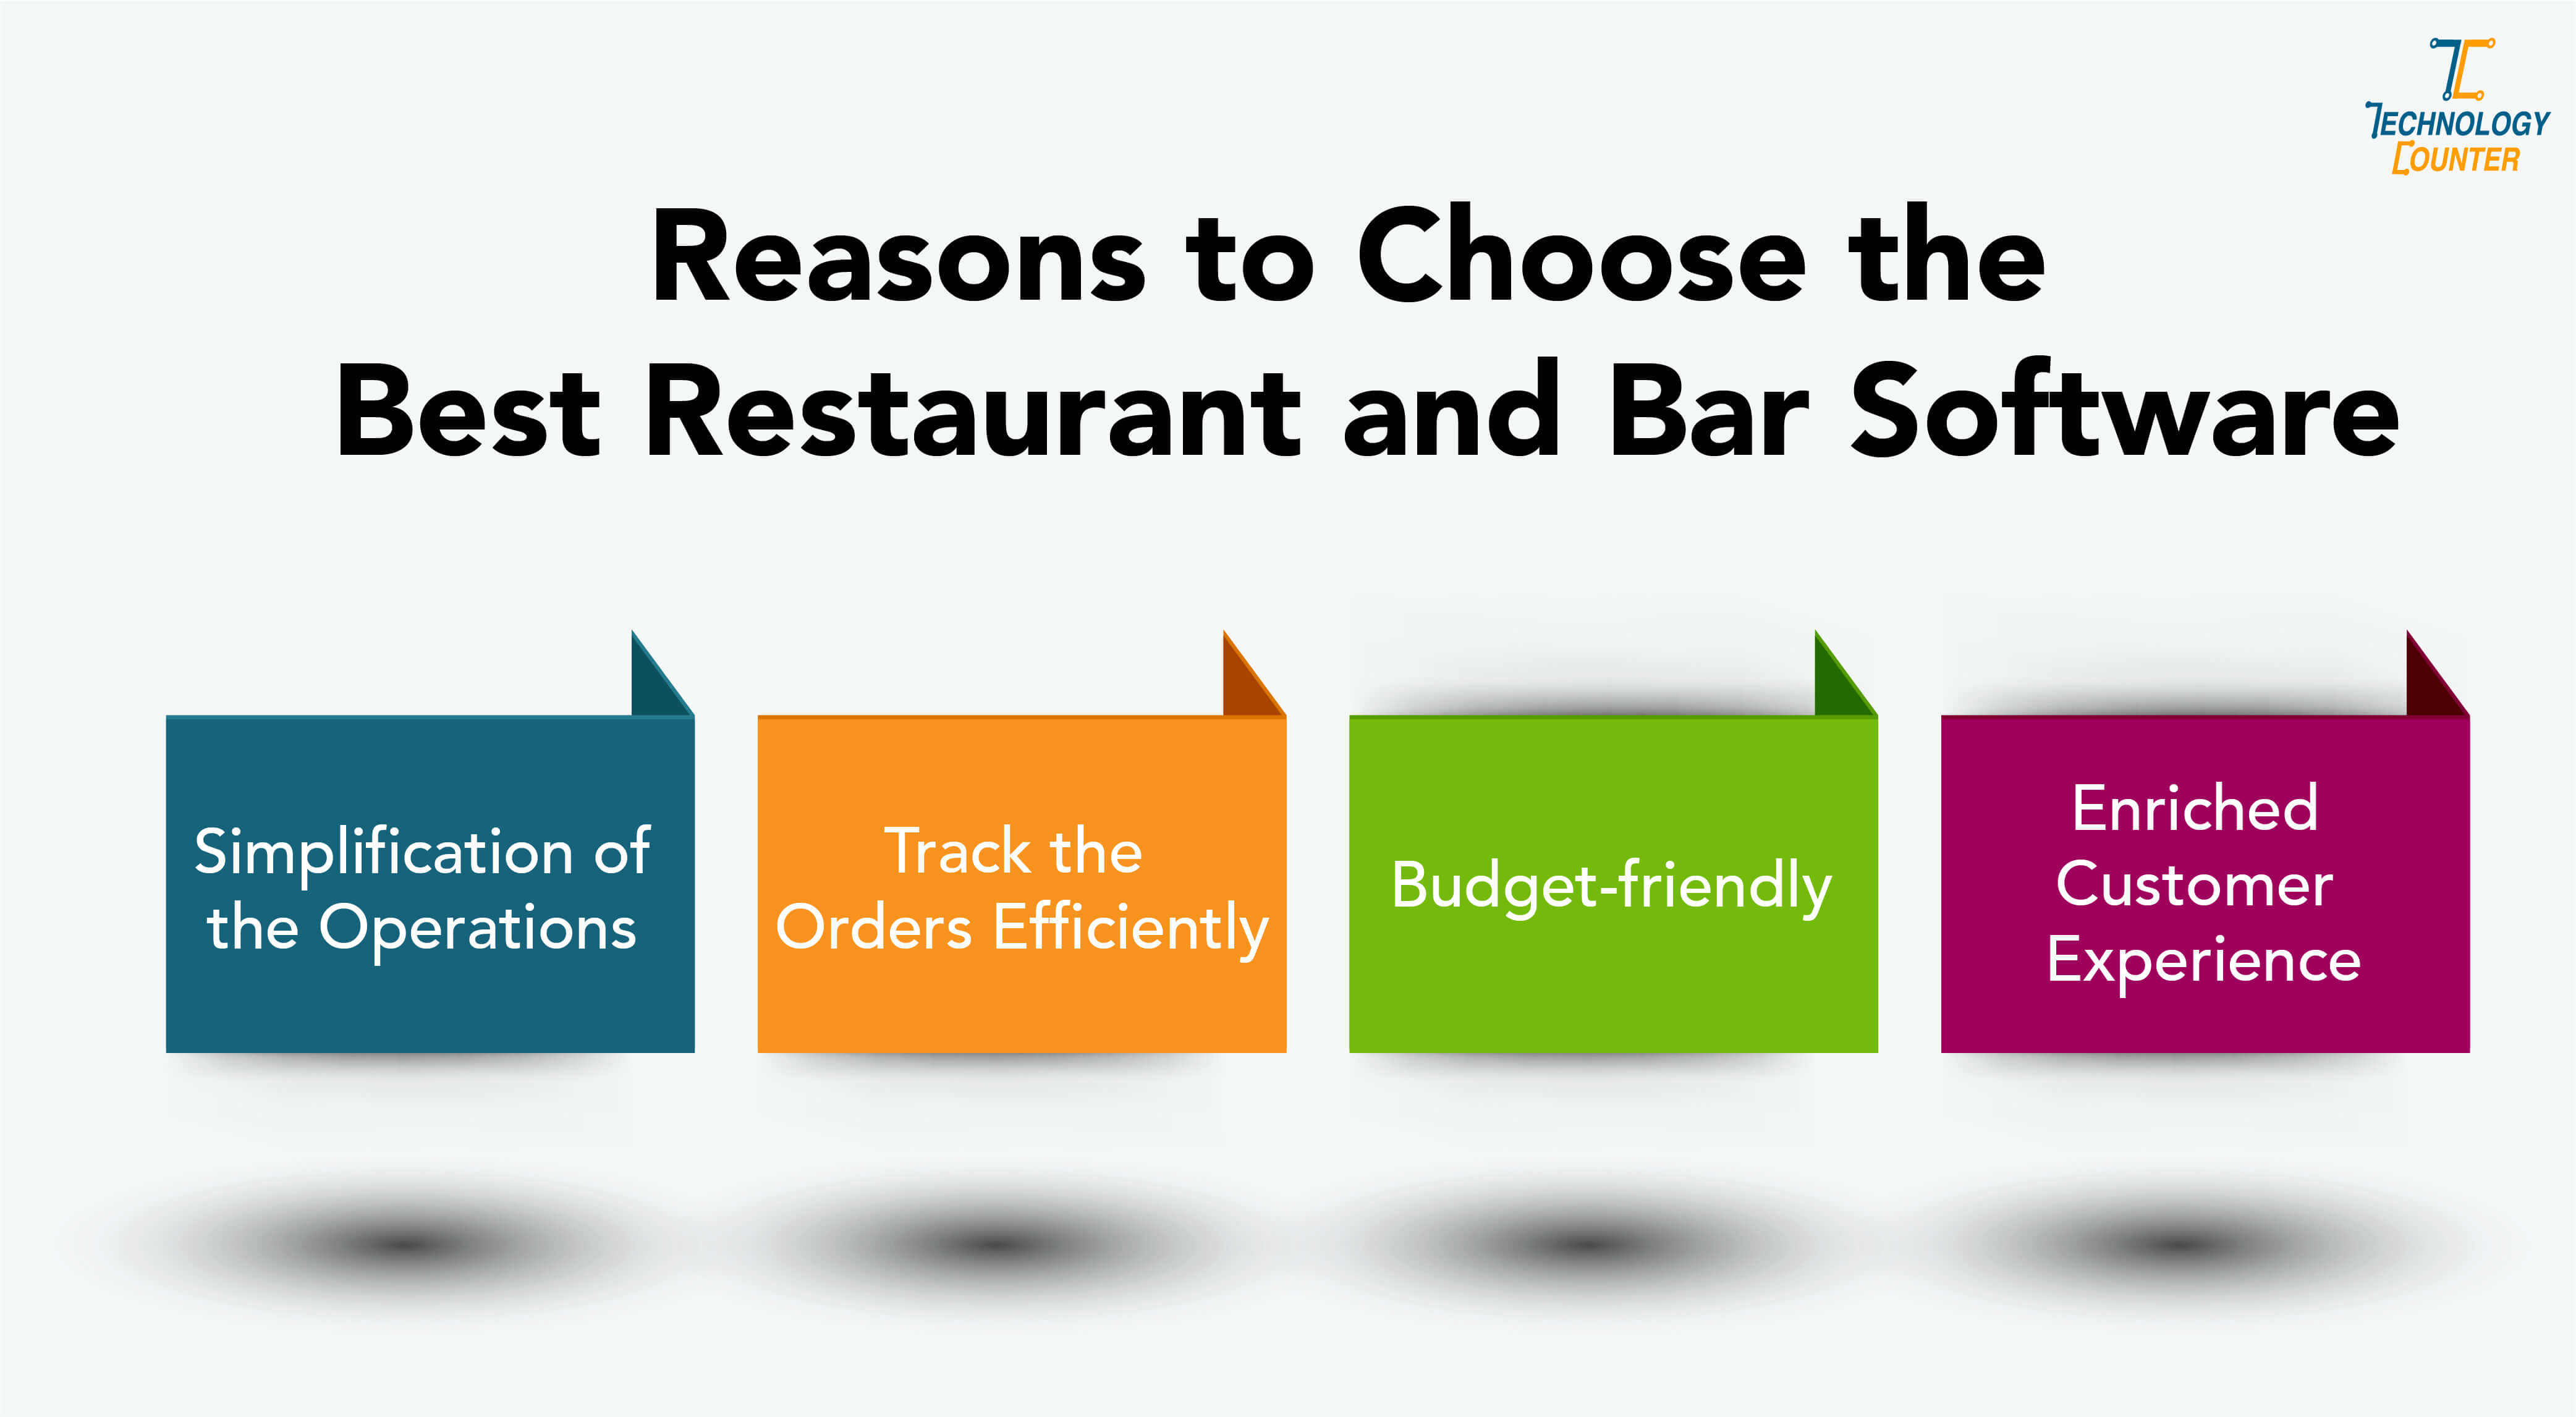 Reasons to Choose the Best Restaurant and Bar Software